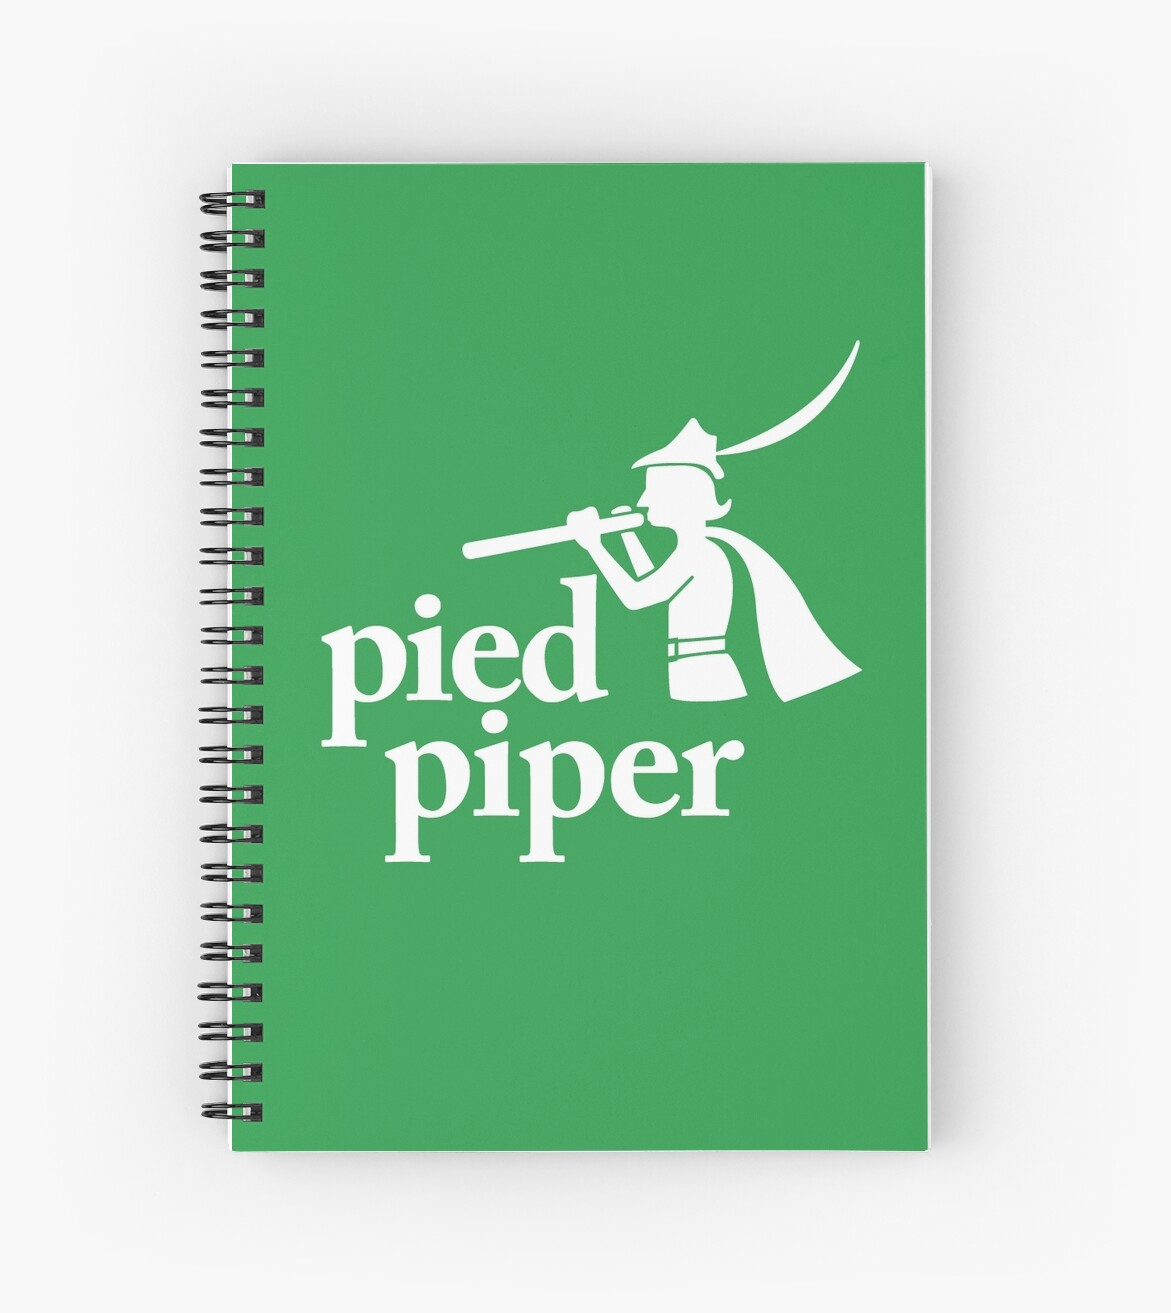 Pied Piper (Version 2) by Expandable Studios